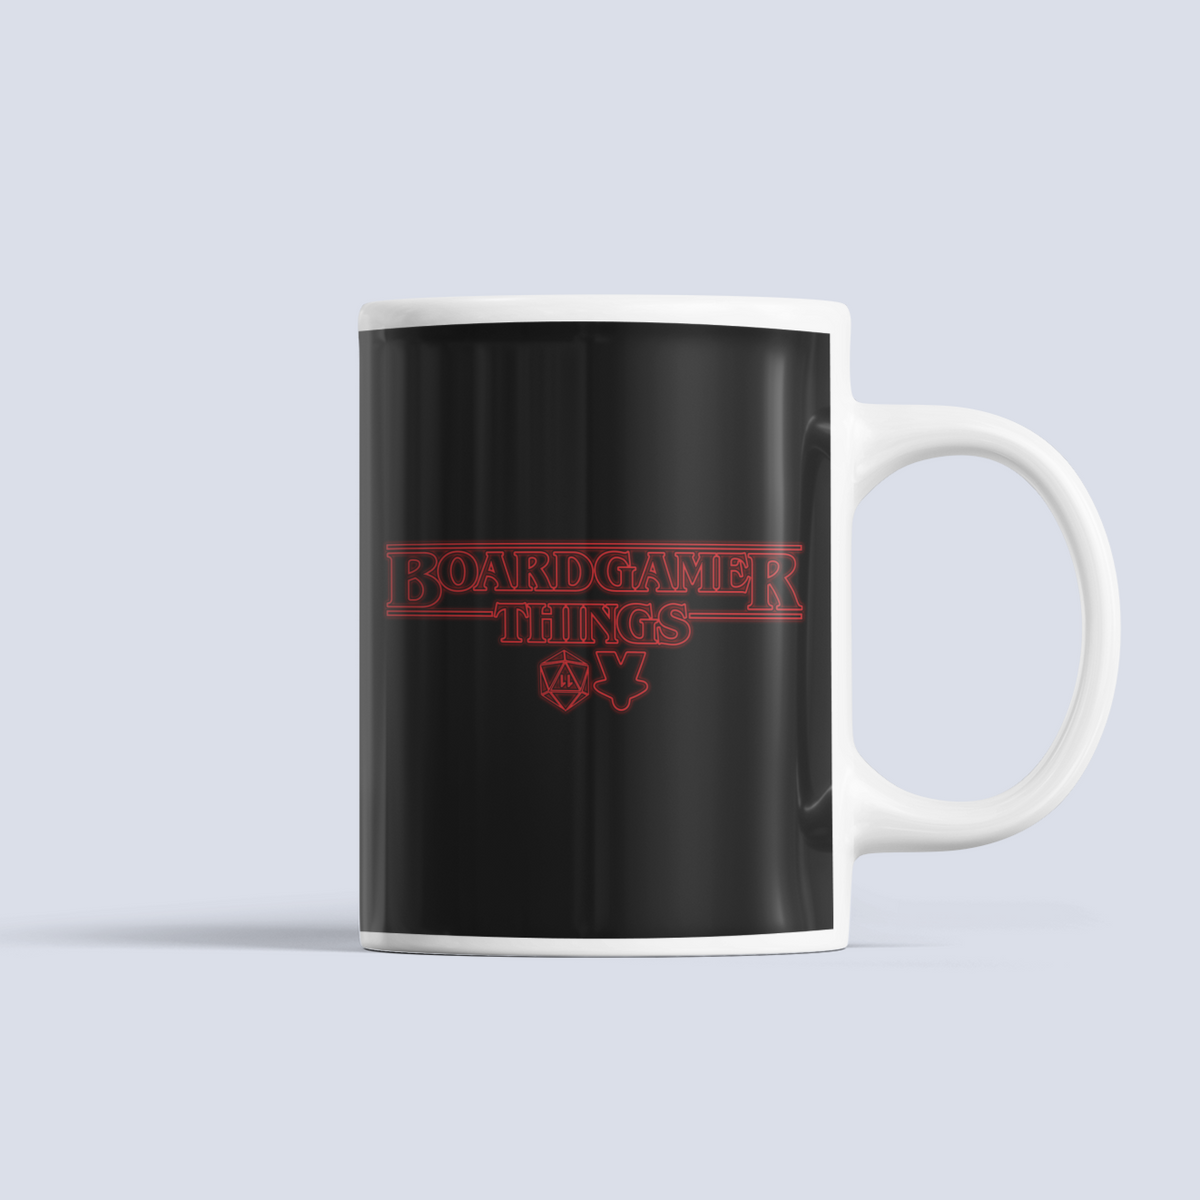 Board Gamer Things Ceramic Mug